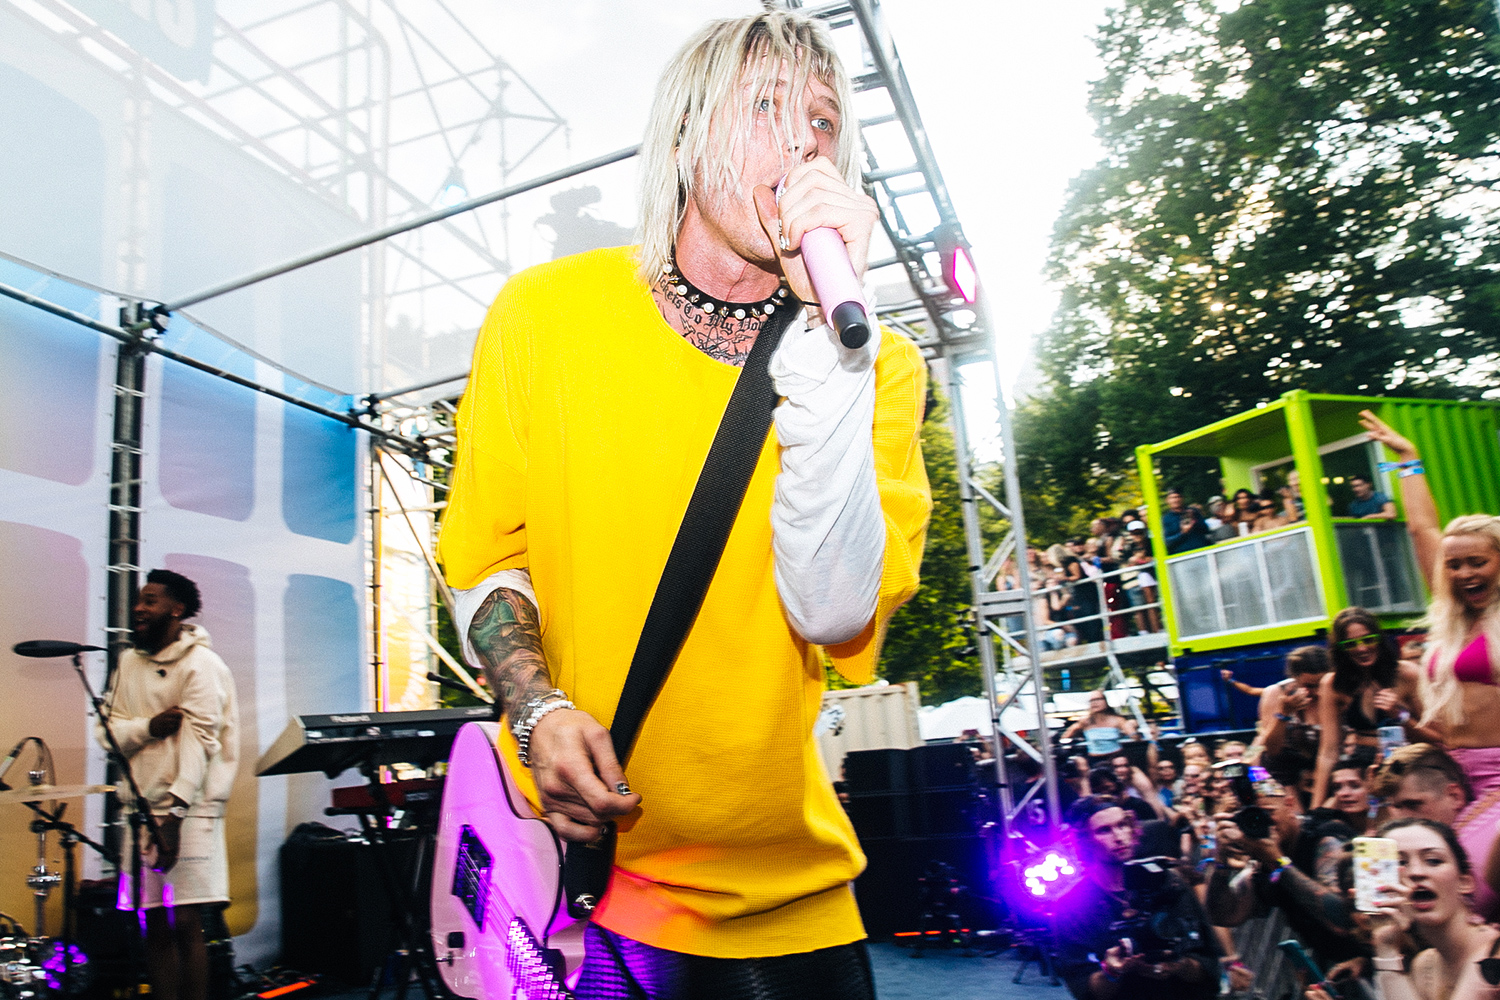 Machine Gun Kelly took to the Bud Light Seltzer Sessions Stage at Lollapalooza to surprise & delight his fans with a secret performance highlighting his biggest hits on Saturday, July 31, 2021.